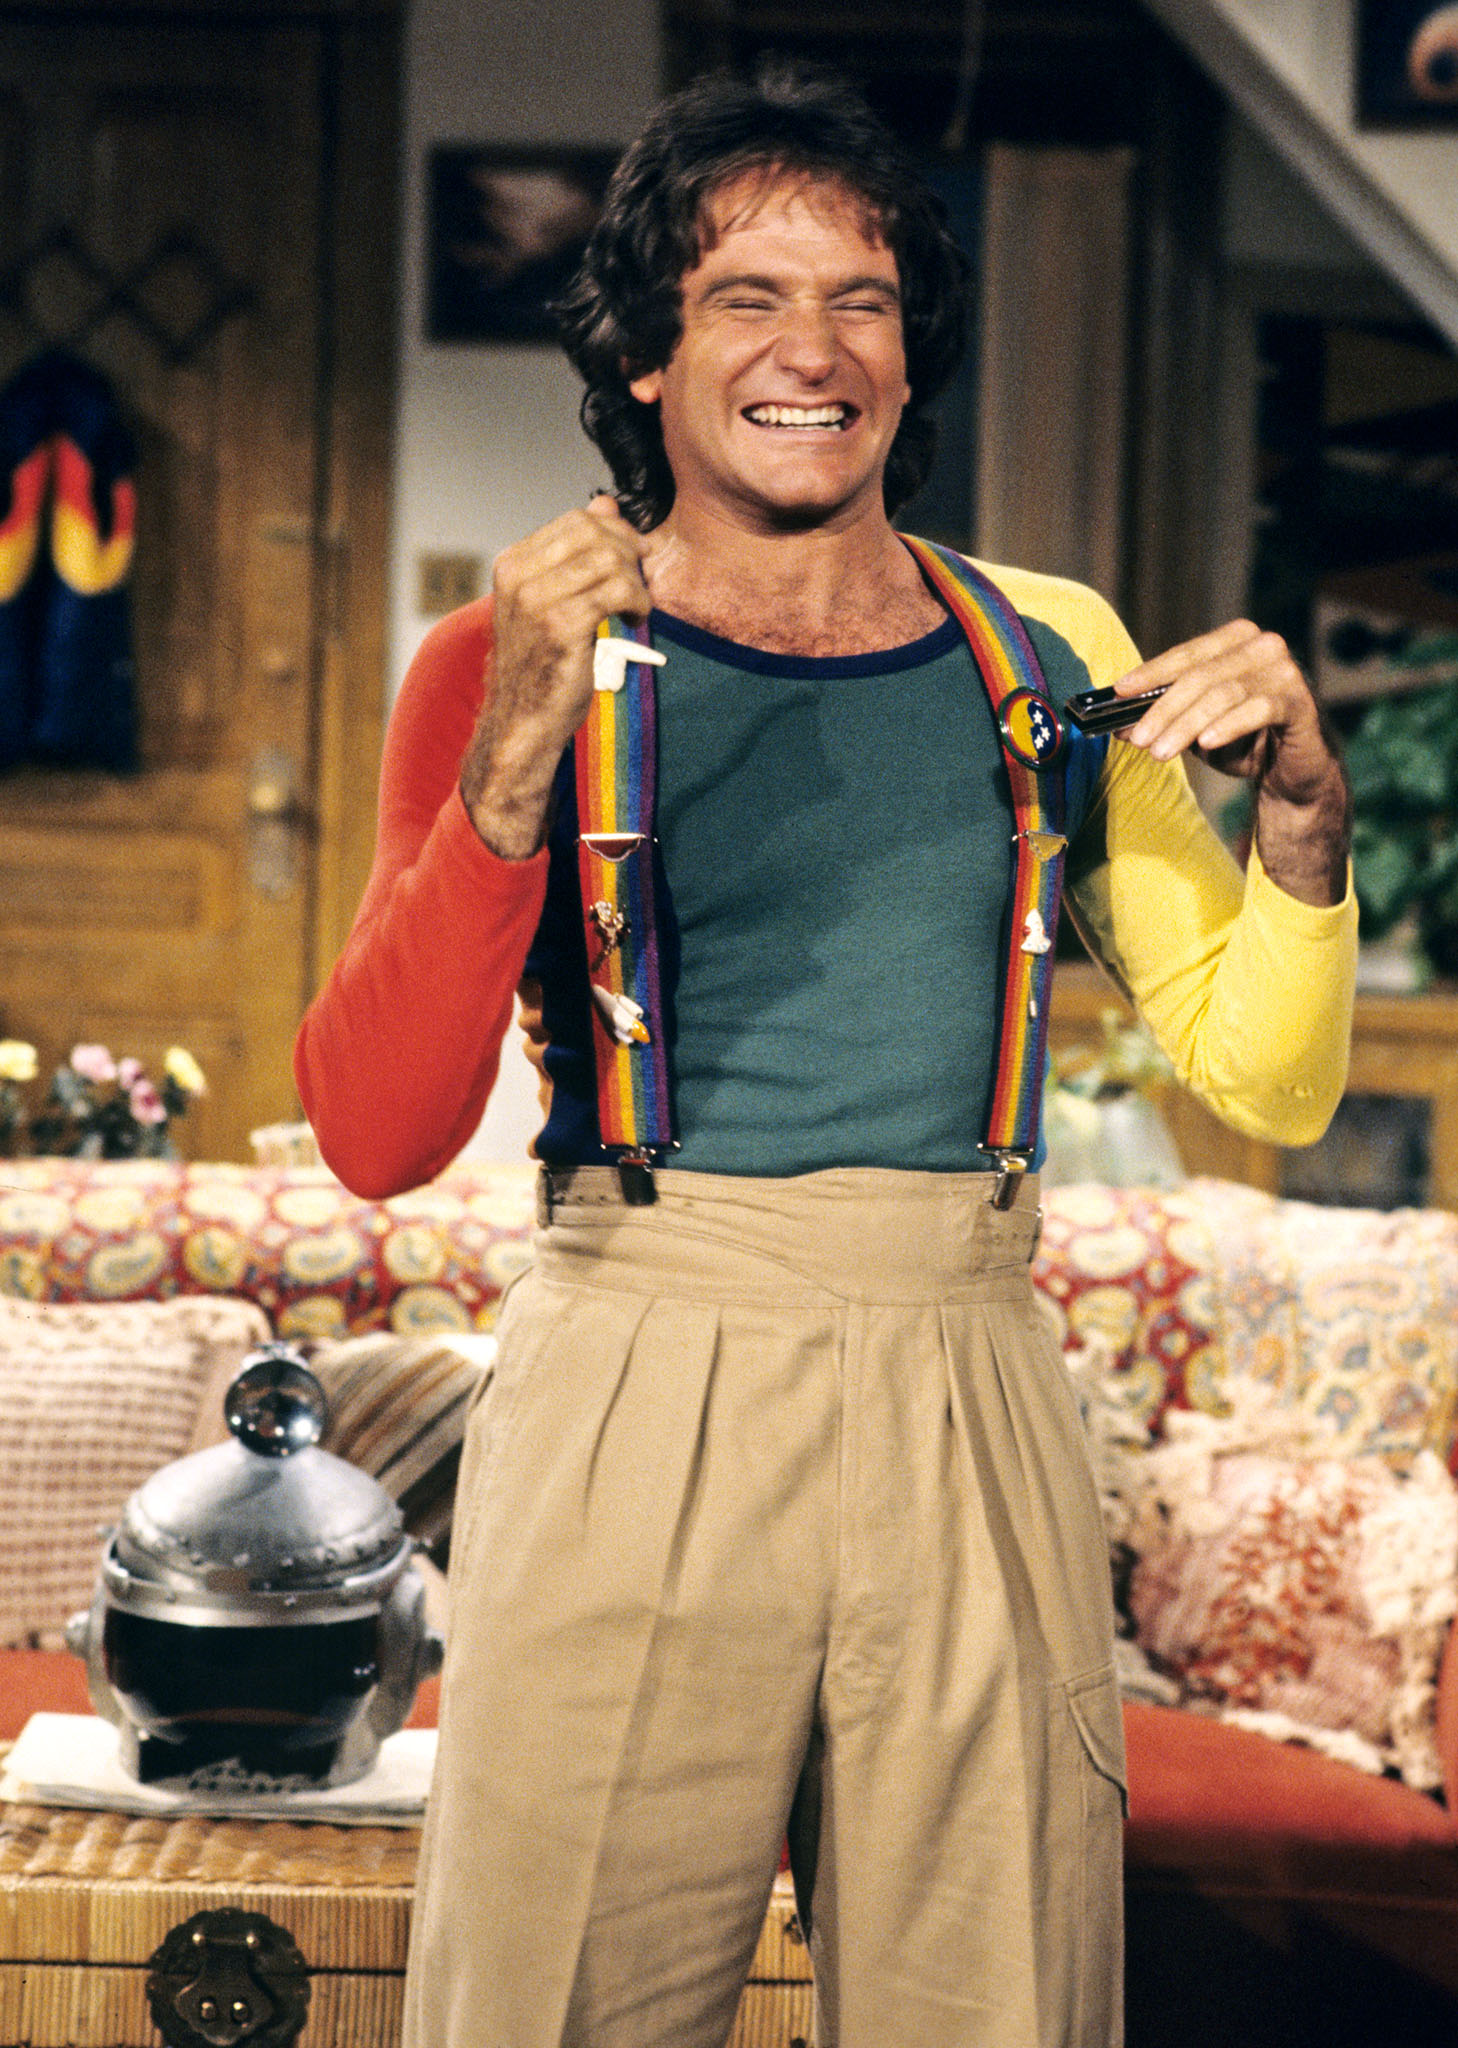 Robin Williams as Mork in classic hit sci-fi comedy Mork & Mindy